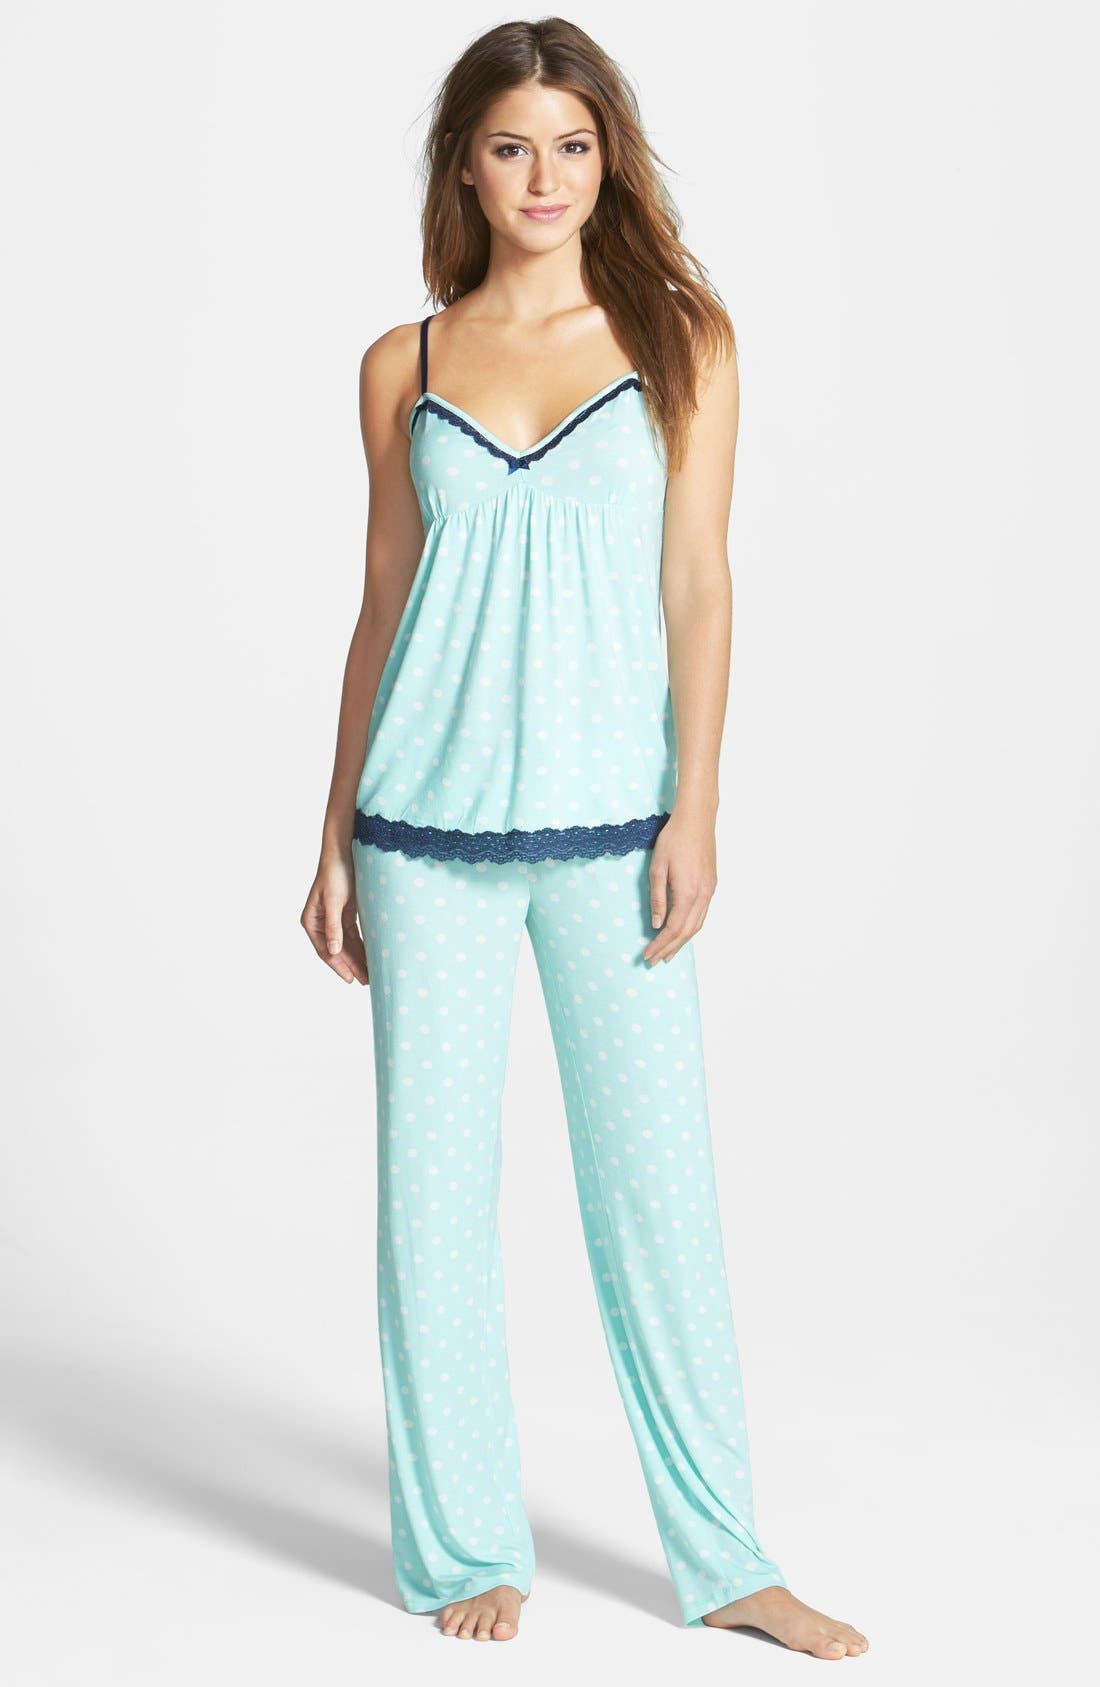 Alternate Image 1 Selected - PJ Salvage 'Modal Essentials' Lace Trim Camisole Pajamas (Nordstrom Exclusive)